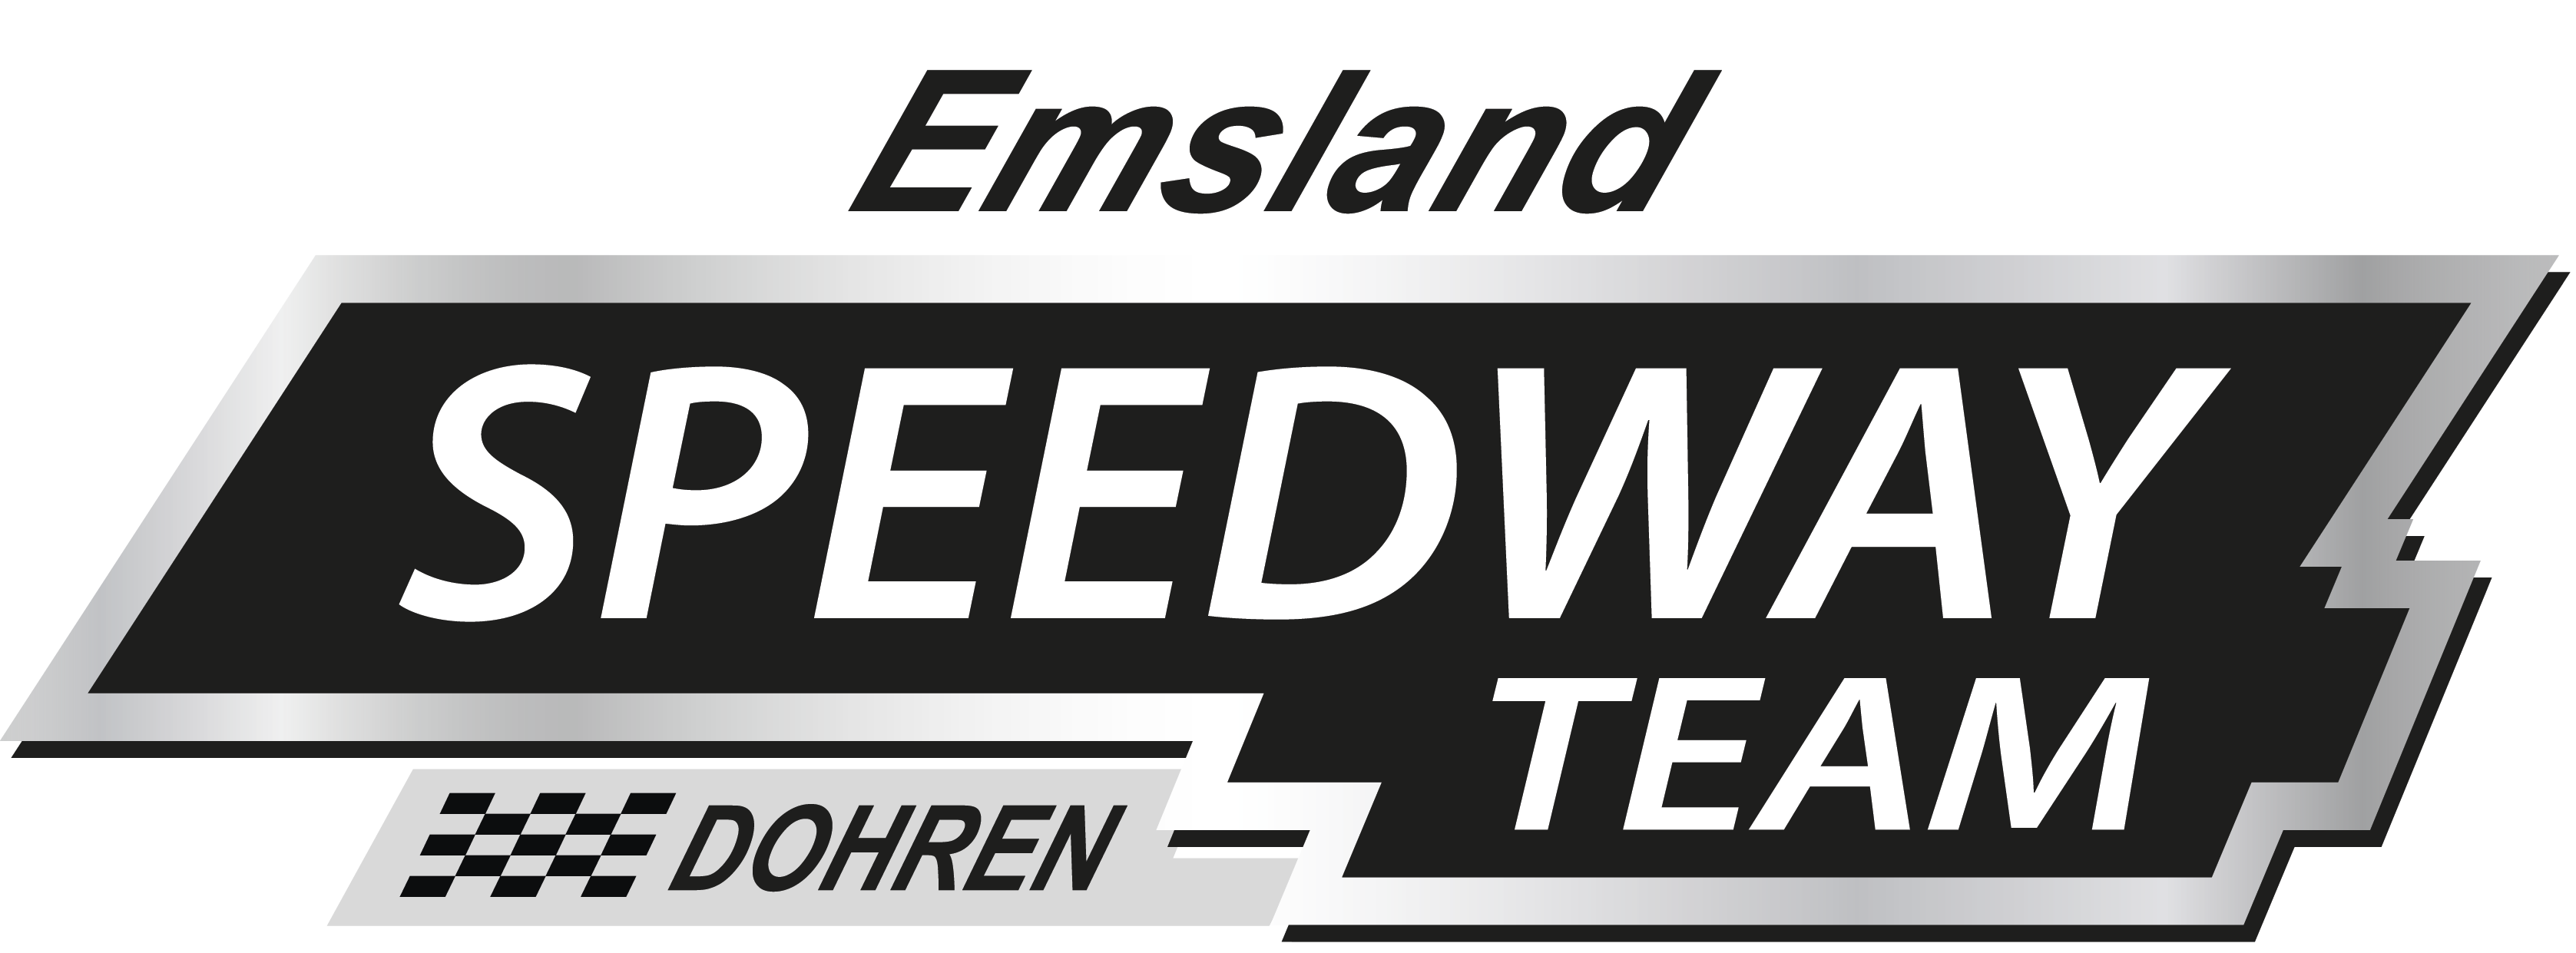 EL Speedwayteam Logo trans2